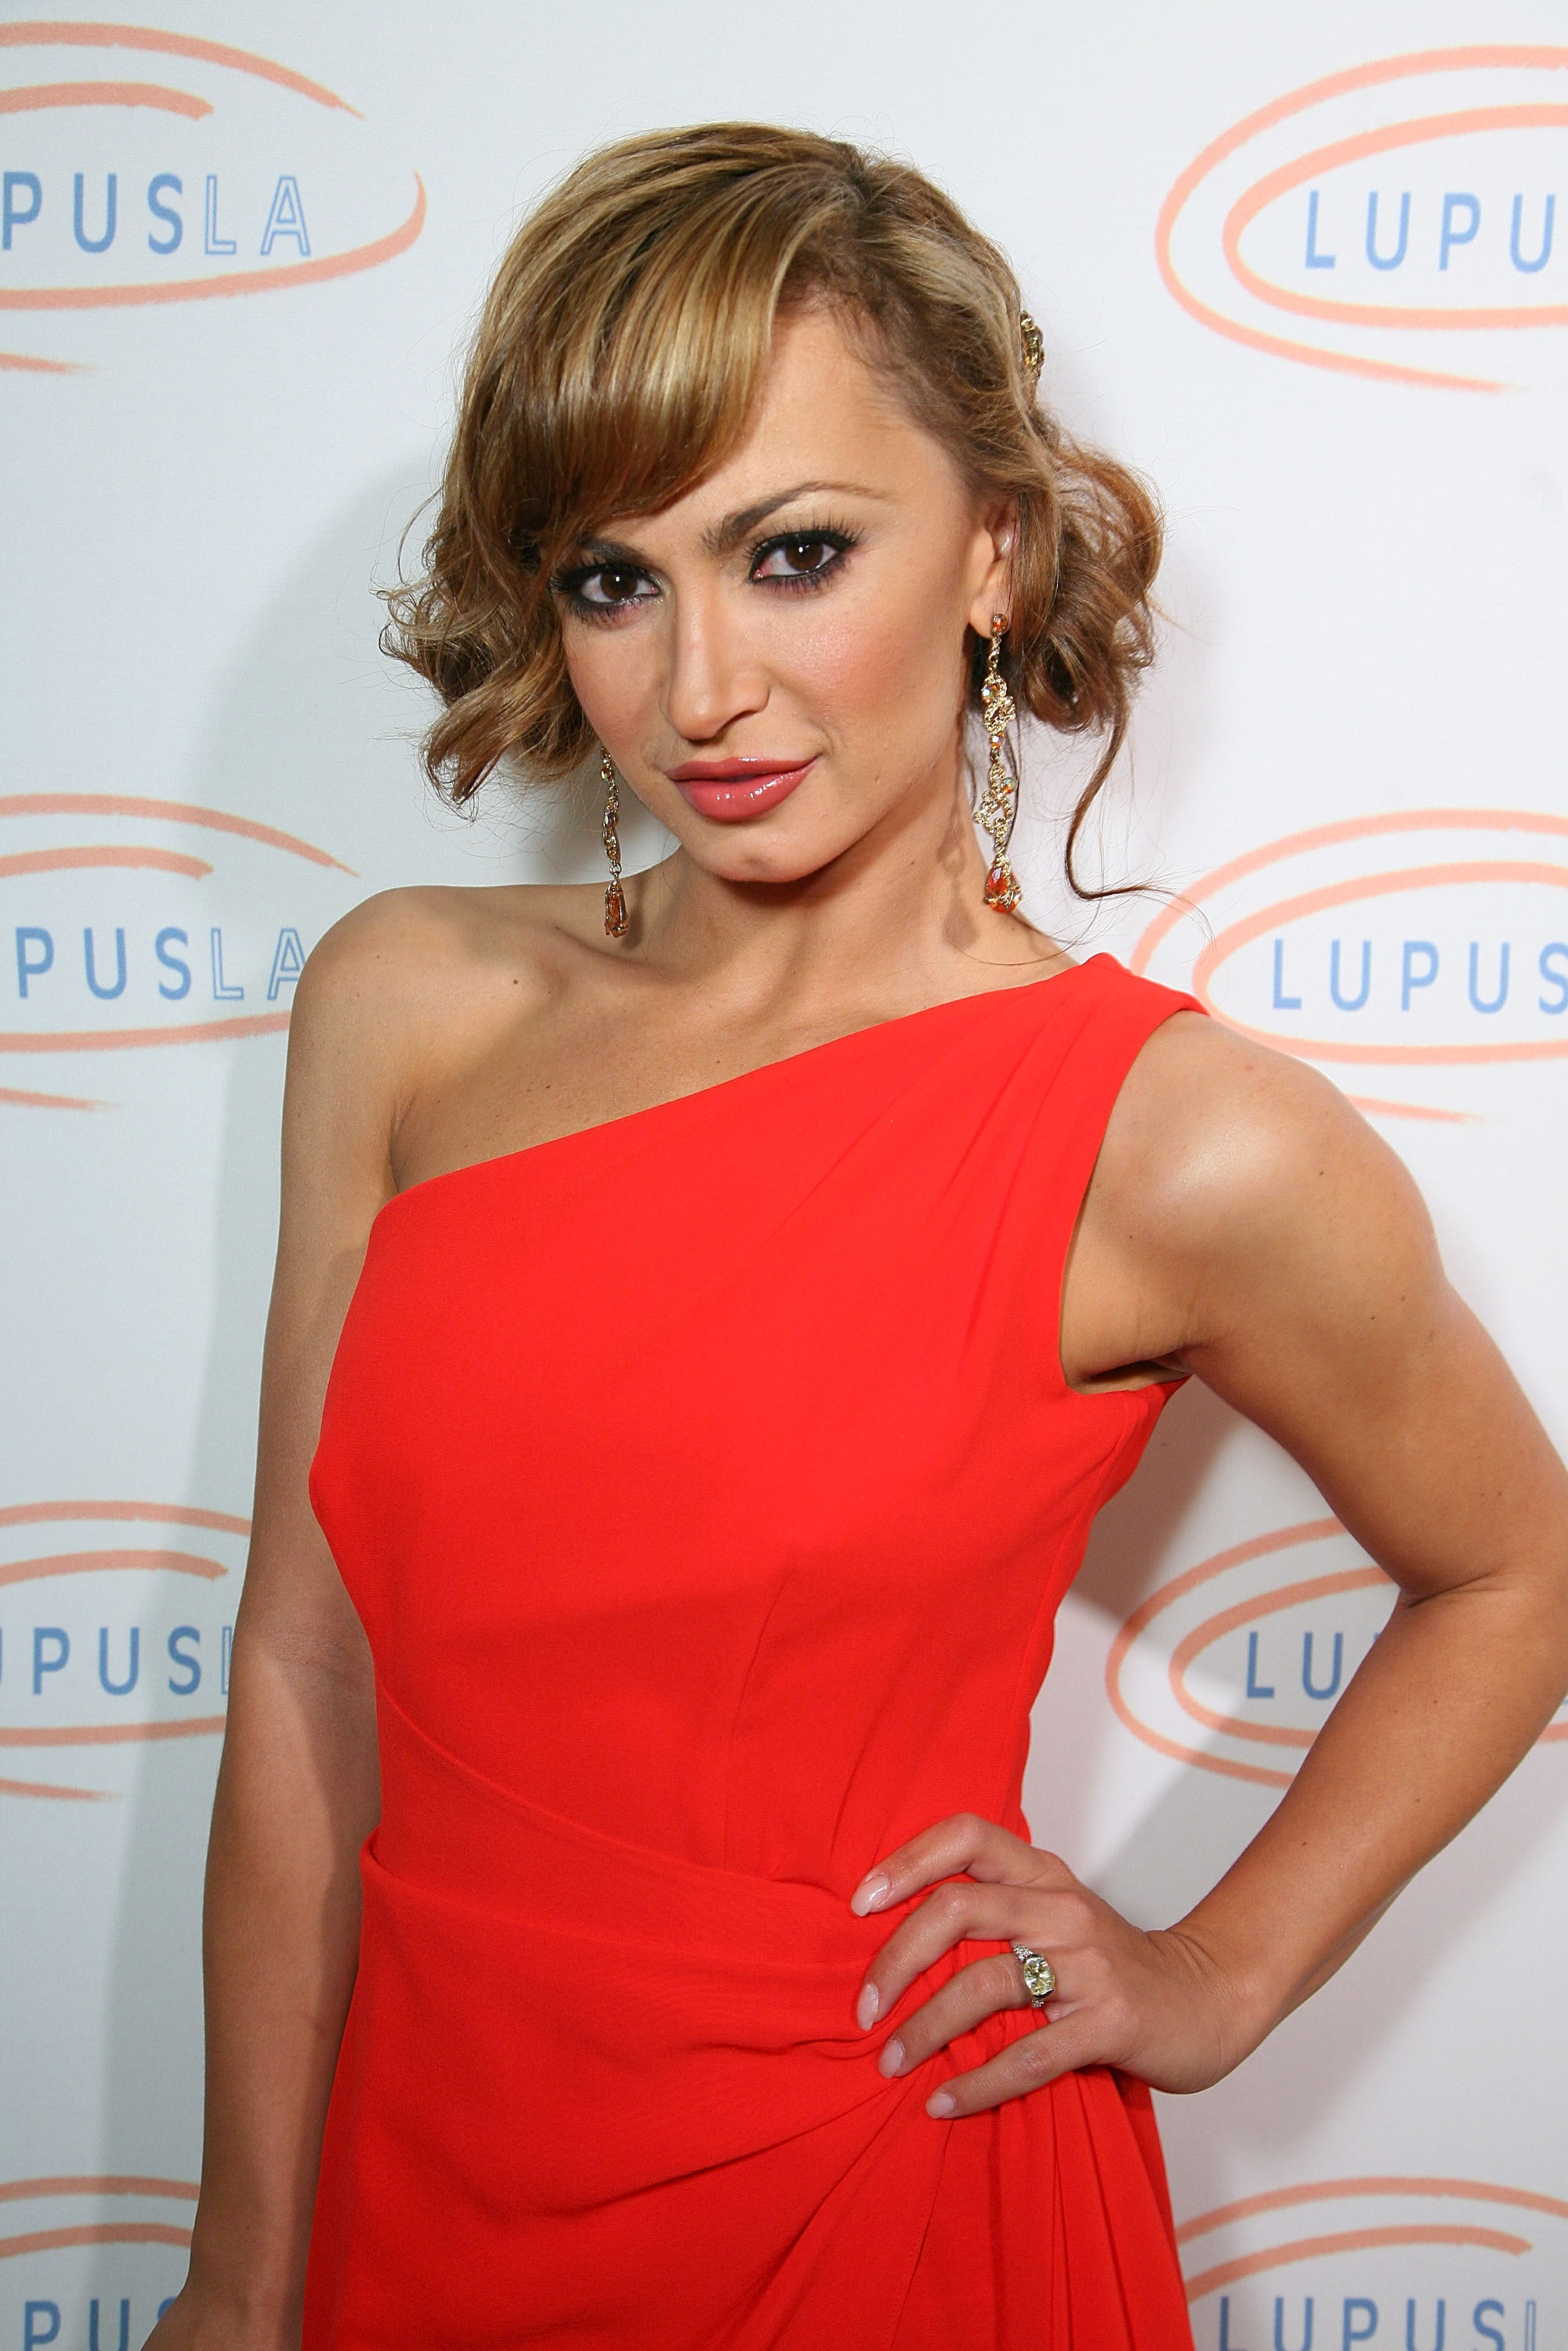 30370_Karina_Smirnoff_2008-11-07_-_Lupus_LA4s_Sixth_Annual_Hollywood_Bag_Ladies_Luncheon_in_Beverly_H_9158_122_366lo.jpg